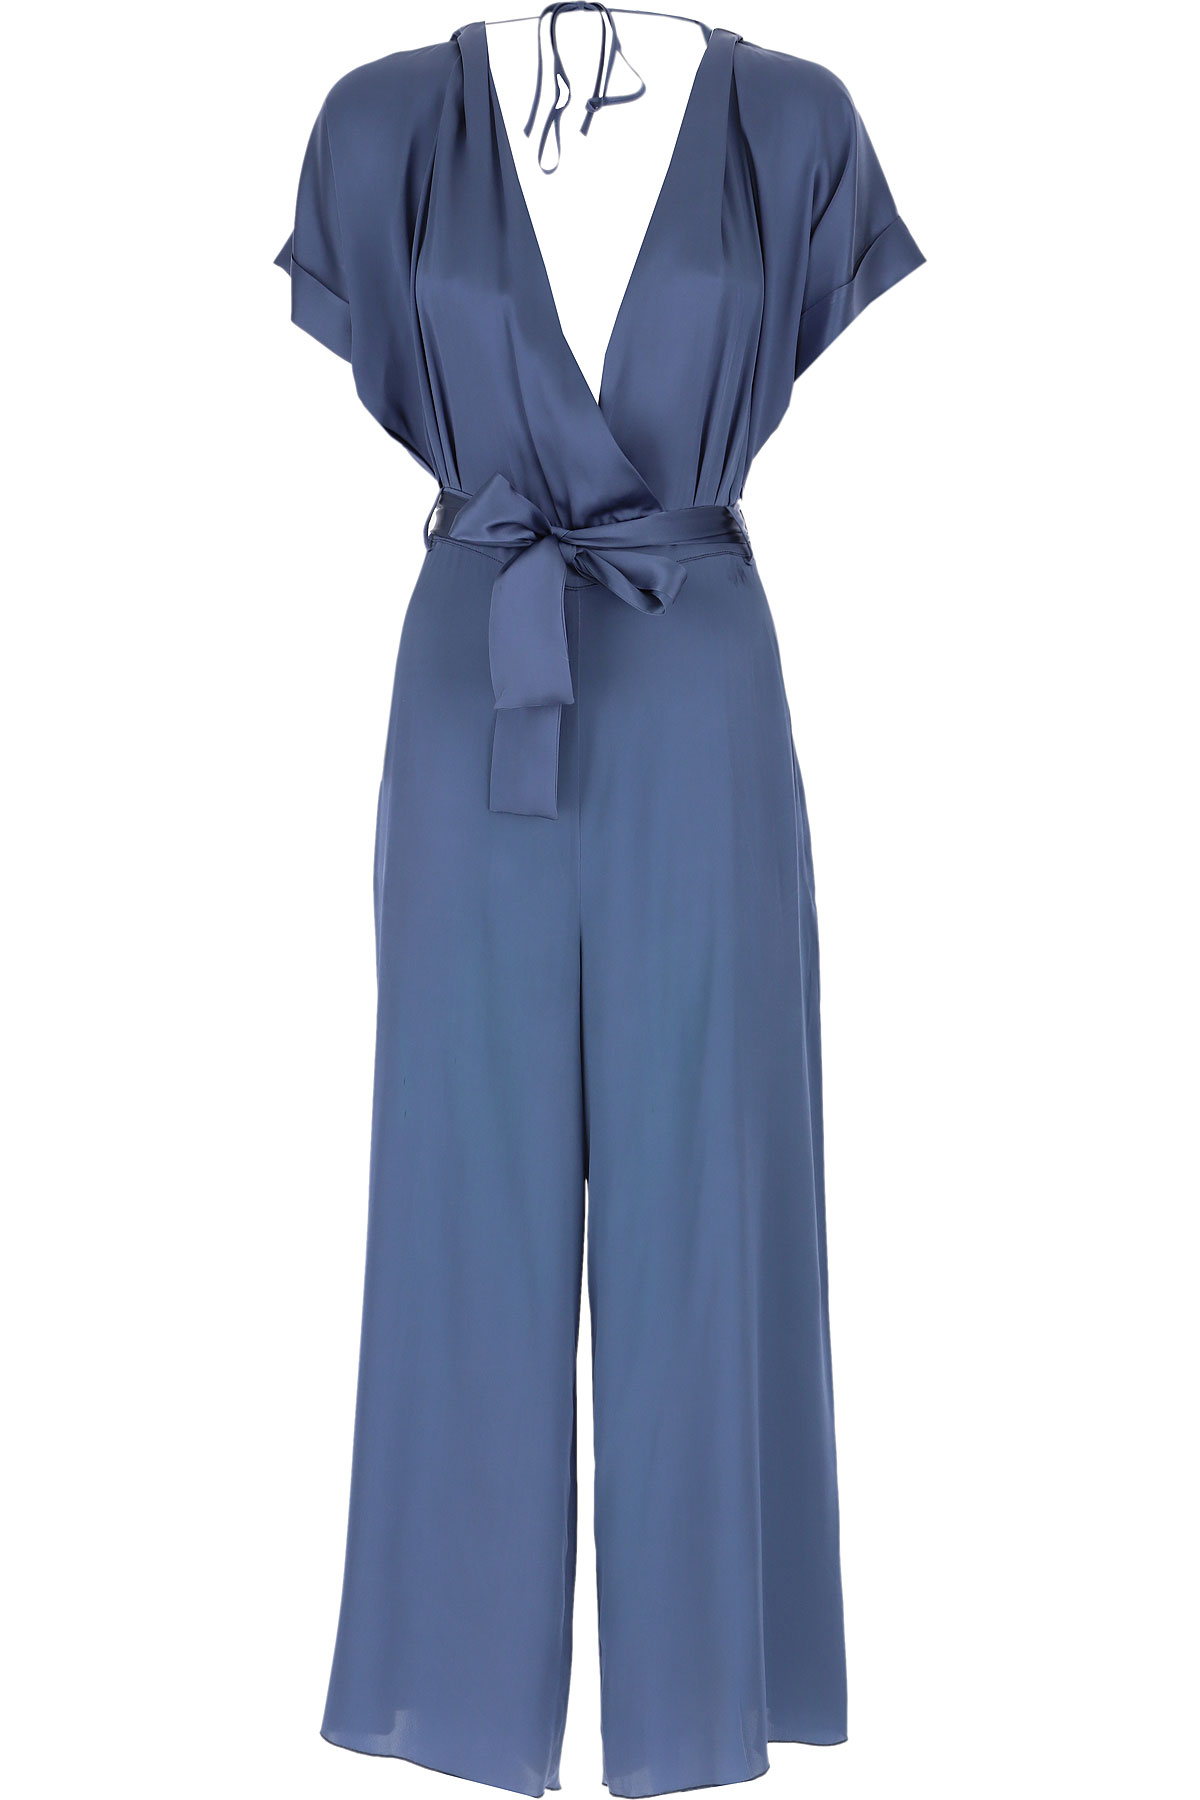 Semicouture Dress for Women, Evening Cocktail Party On Sale, Blue, acetate, 2019, 6 8